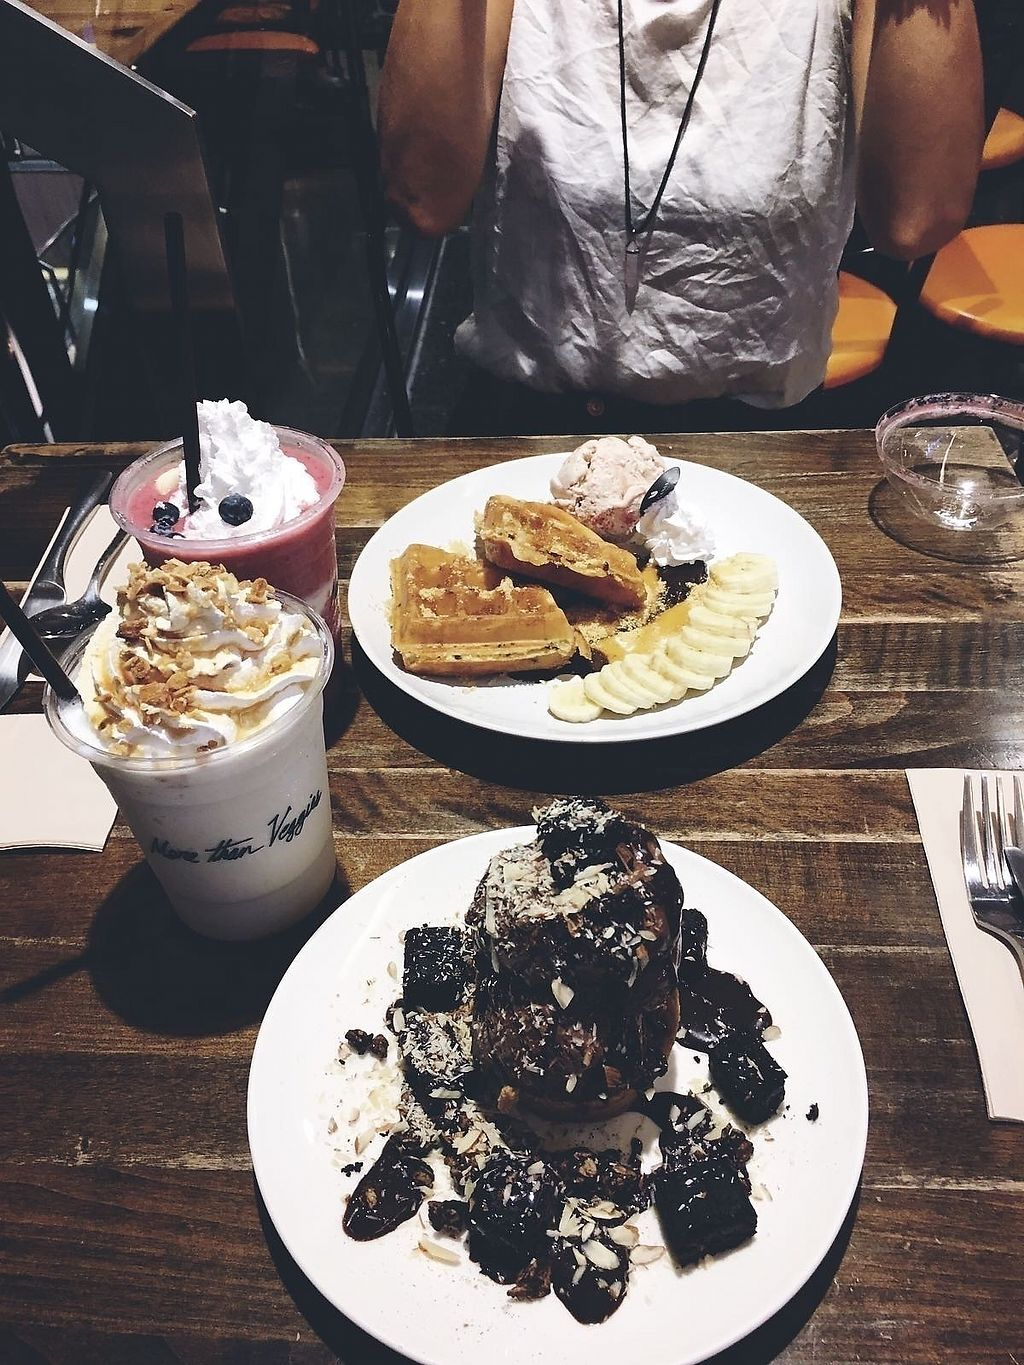 """Photo of Veganerie - Mercury Ville  by <a href=""""/members/profile/Tara_91"""">Tara_91</a> <br/>Waffles, brownies, shakes, all yummm <br/> July 20, 2017  - <a href='/contact/abuse/image/43651/282361'>Report</a>"""